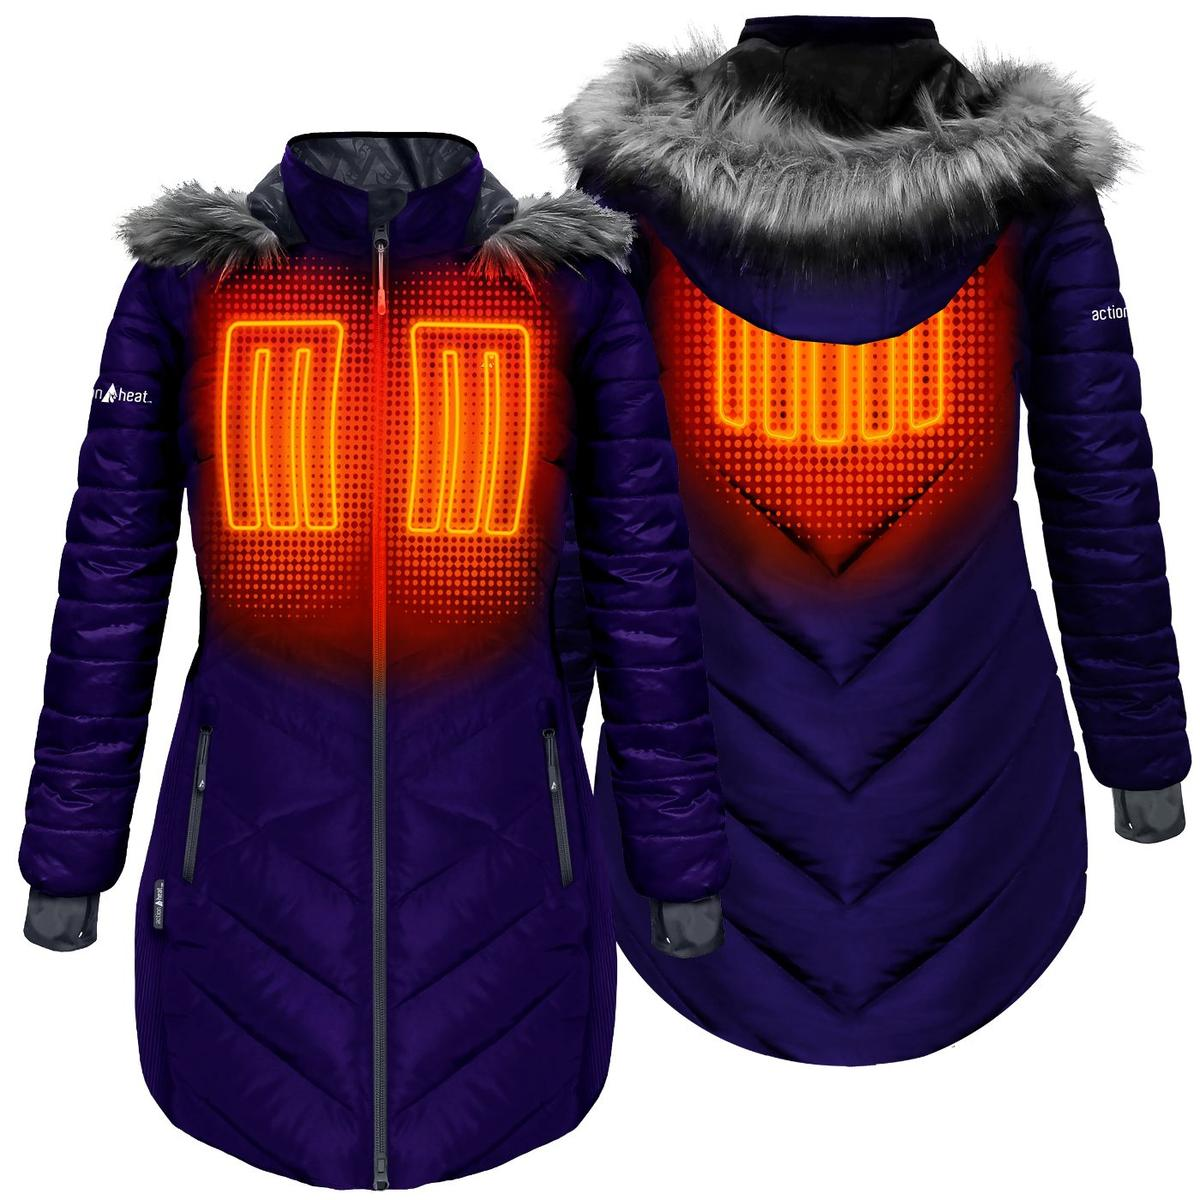 ActionHeat 5V Heated Long Puffer Jacket W/ Hood - Women's - Back